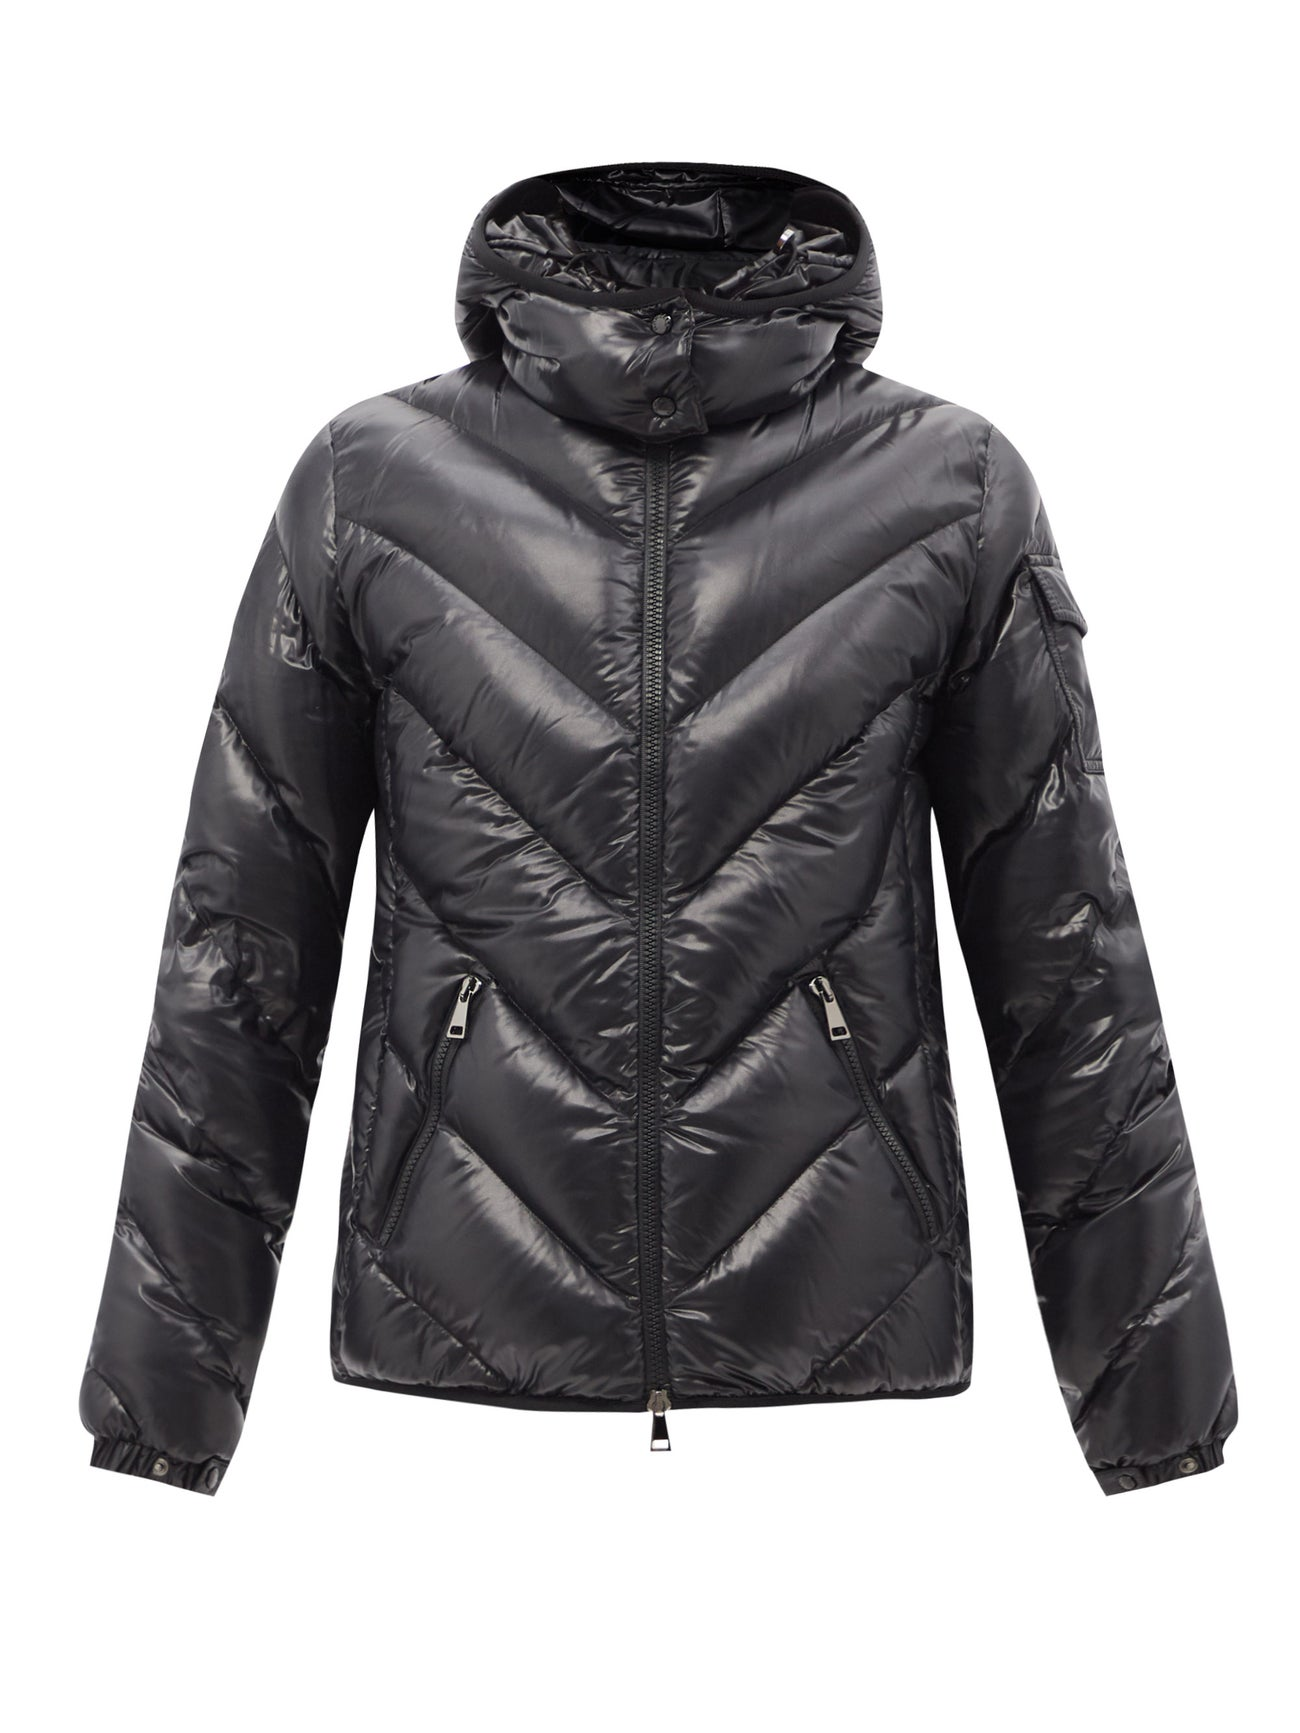 MONCLER Brouel quilted down hooded jacket $1,650